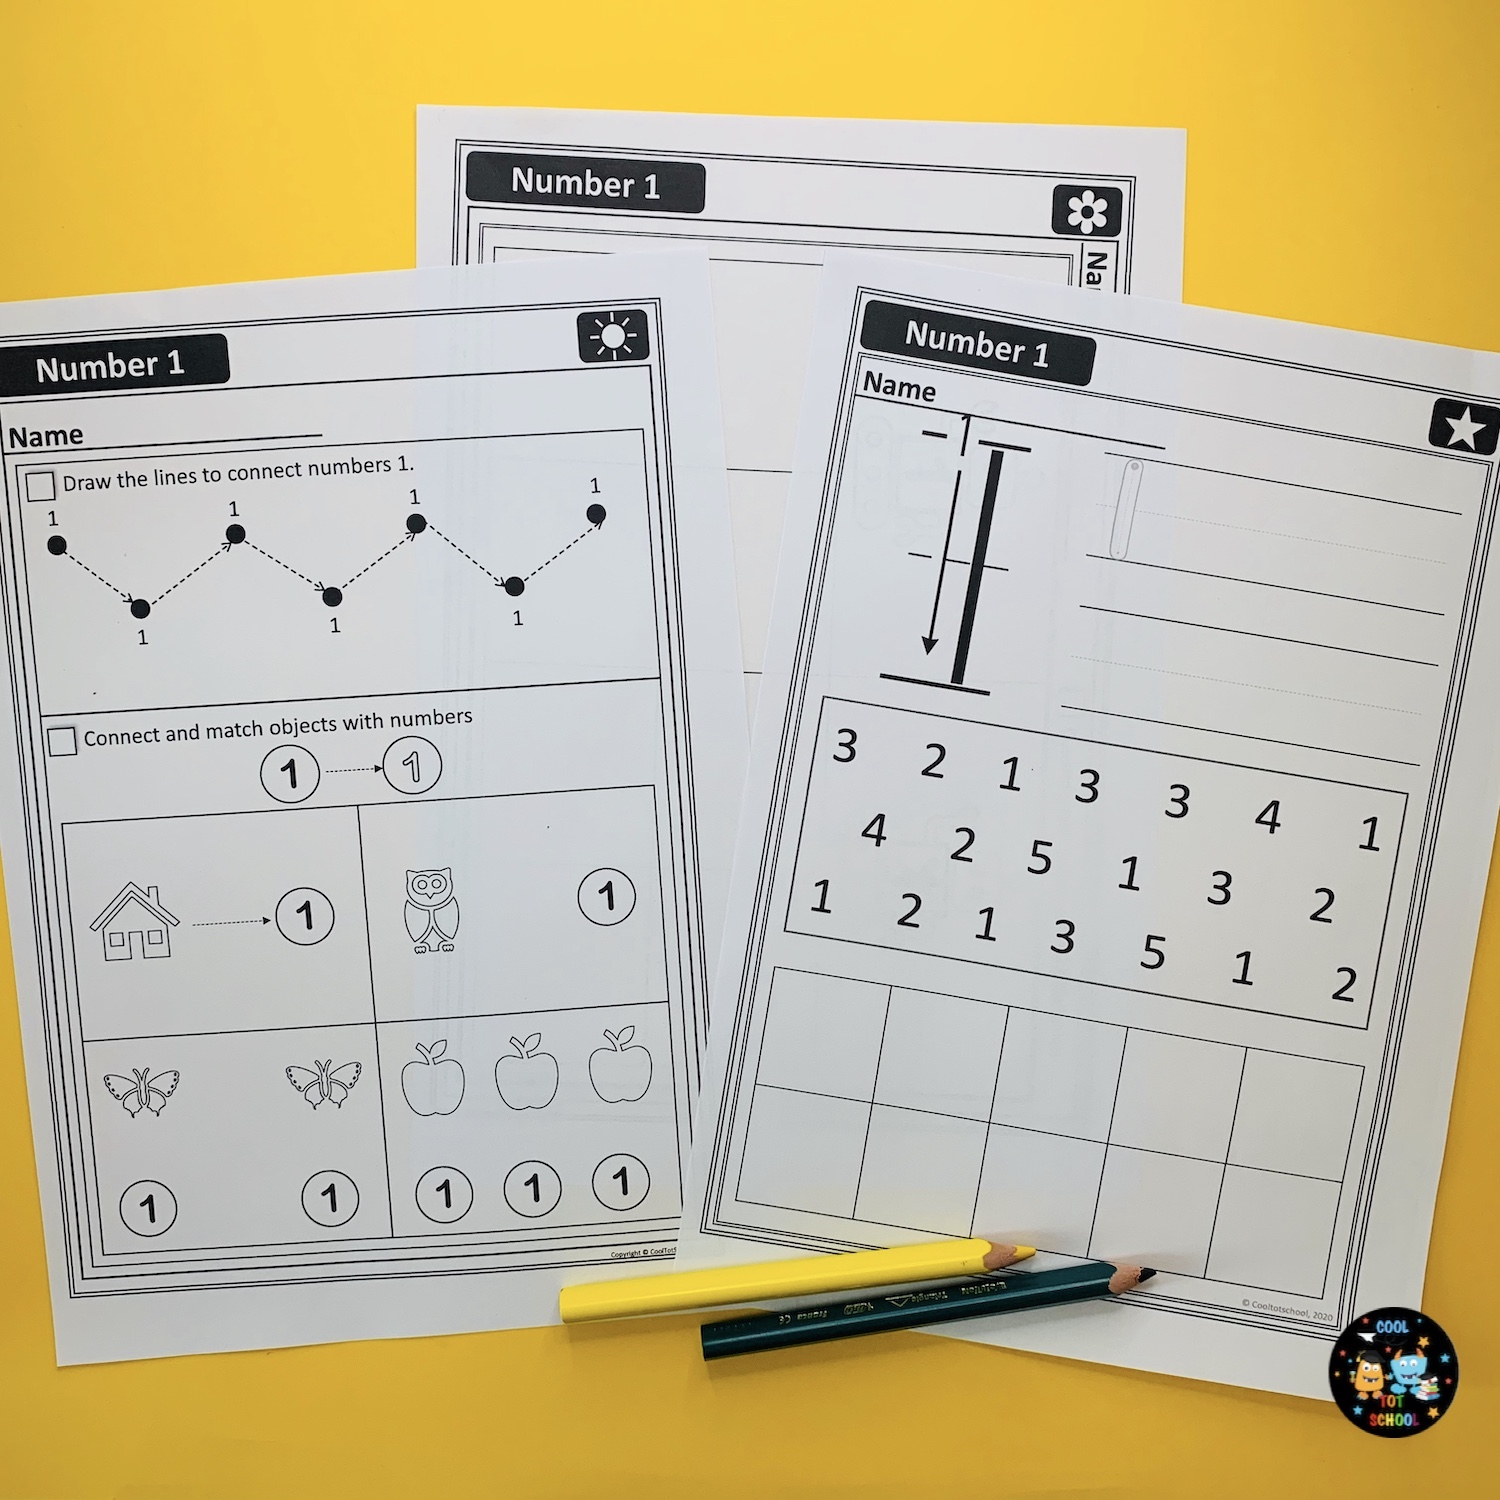 preschool-math-worksheets-to-practice-and-learn-number-1